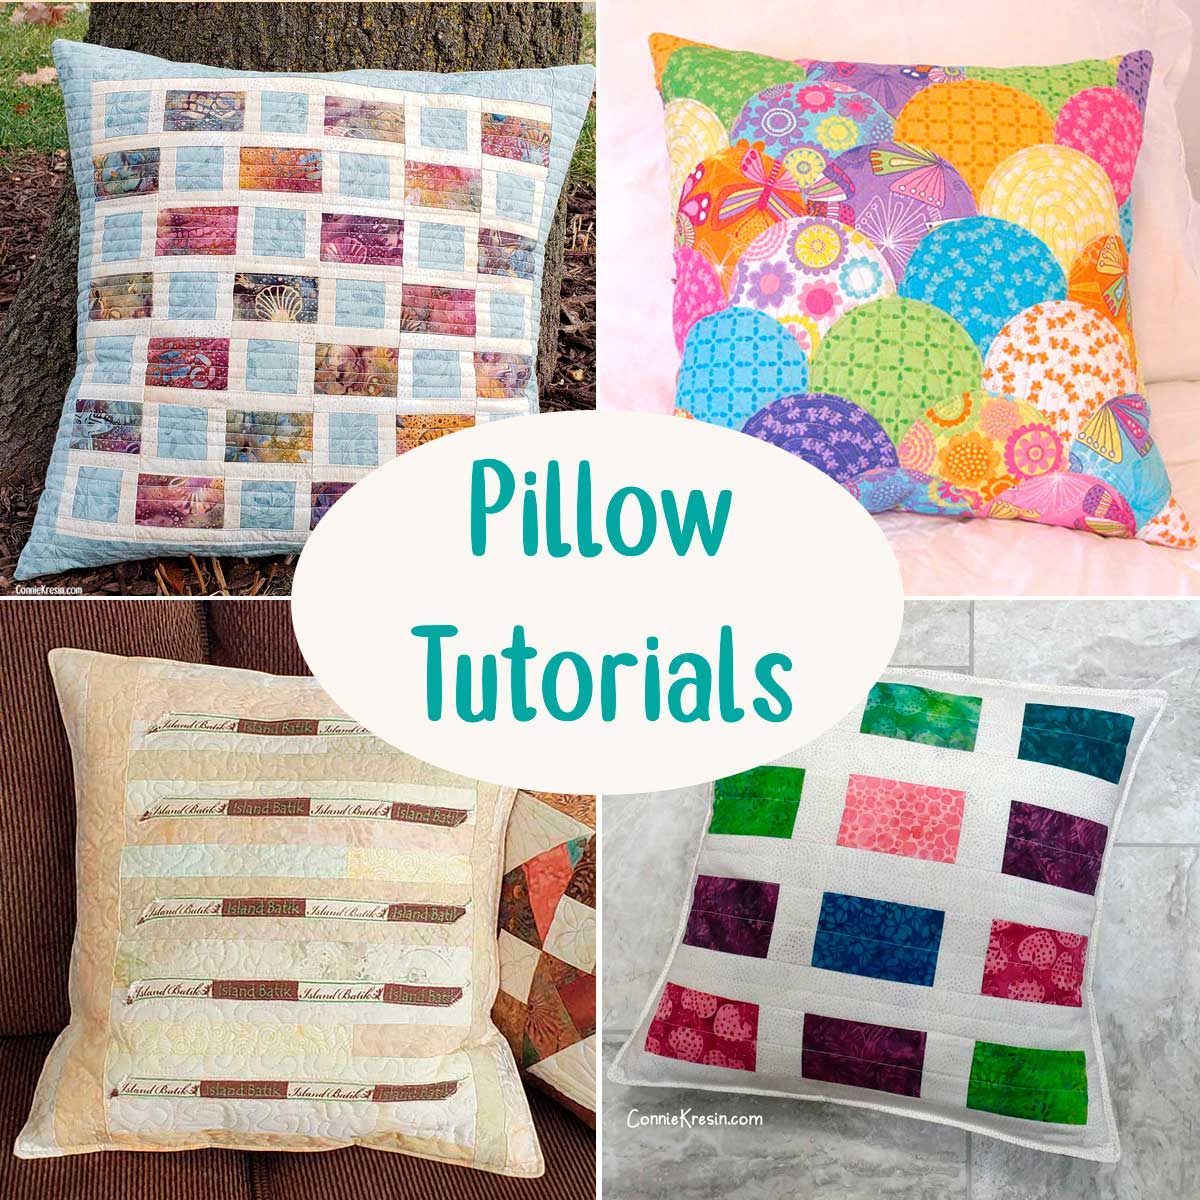 Category for Pillow tutorials